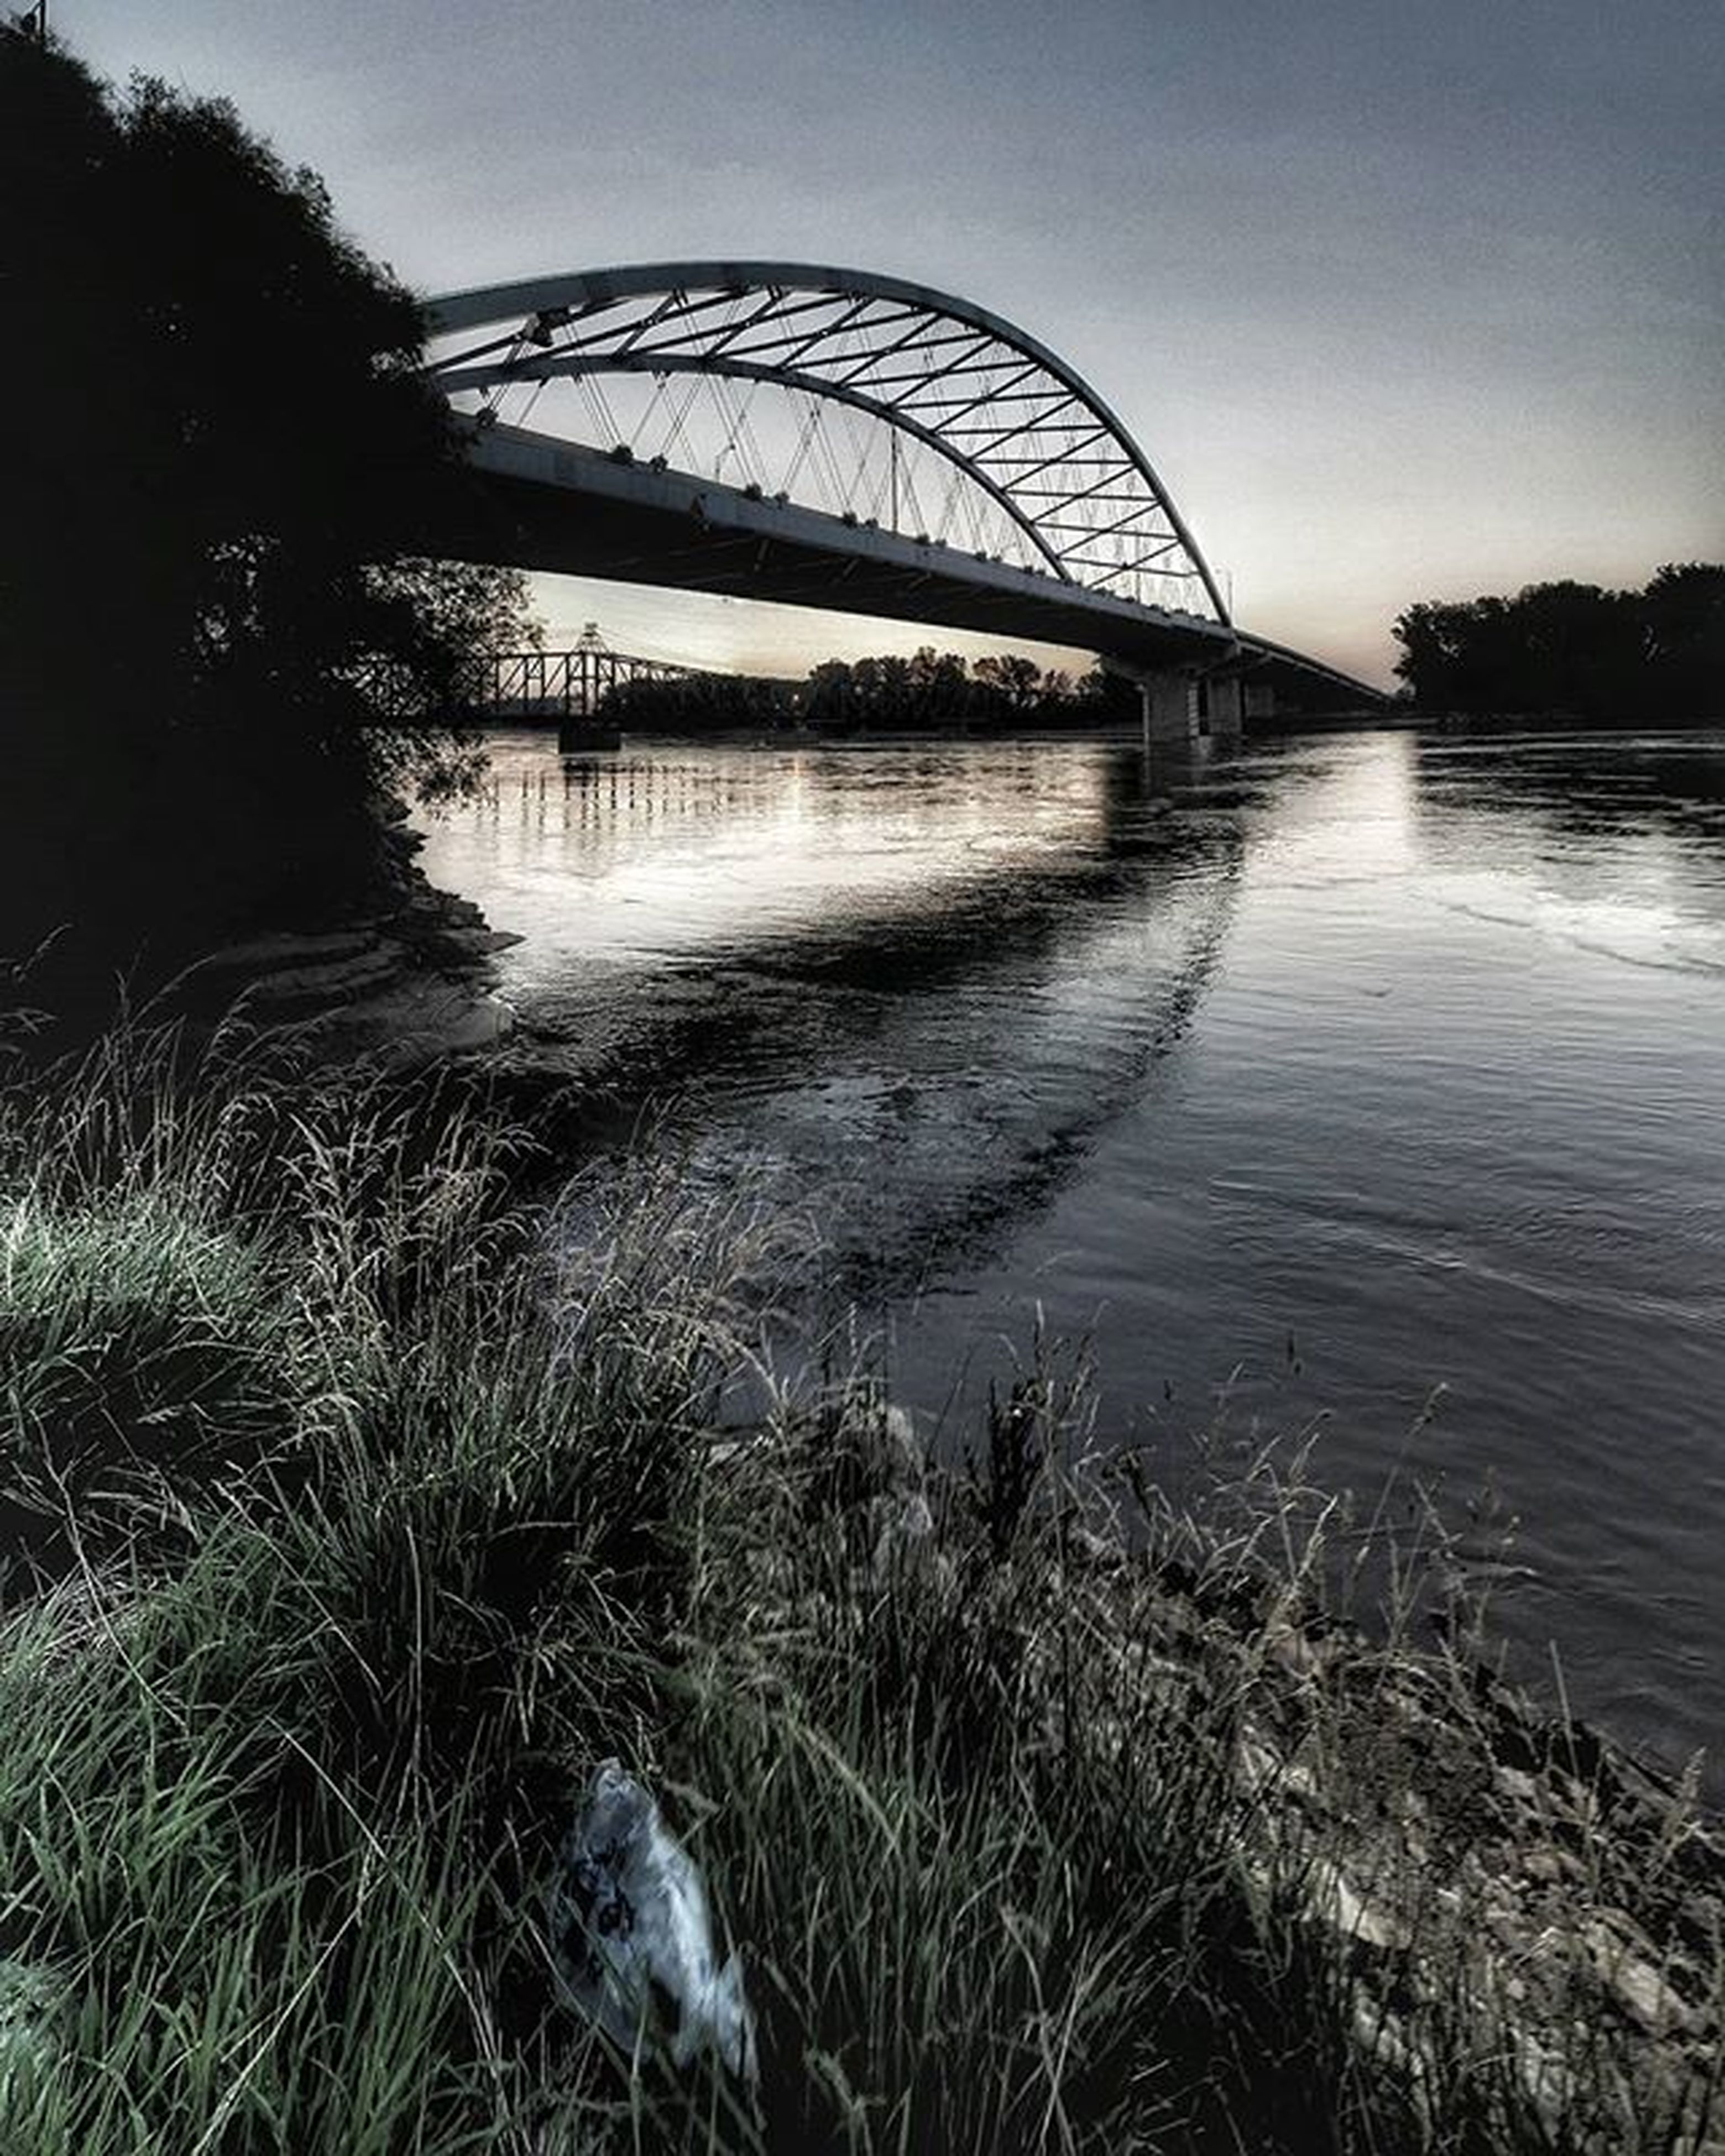 water, bridge - man made structure, river, connection, built structure, architecture, sky, engineering, bridge, clear sky, tree, arch bridge, reflection, grass, riverbank, arch, tranquility, nature, no people, lake